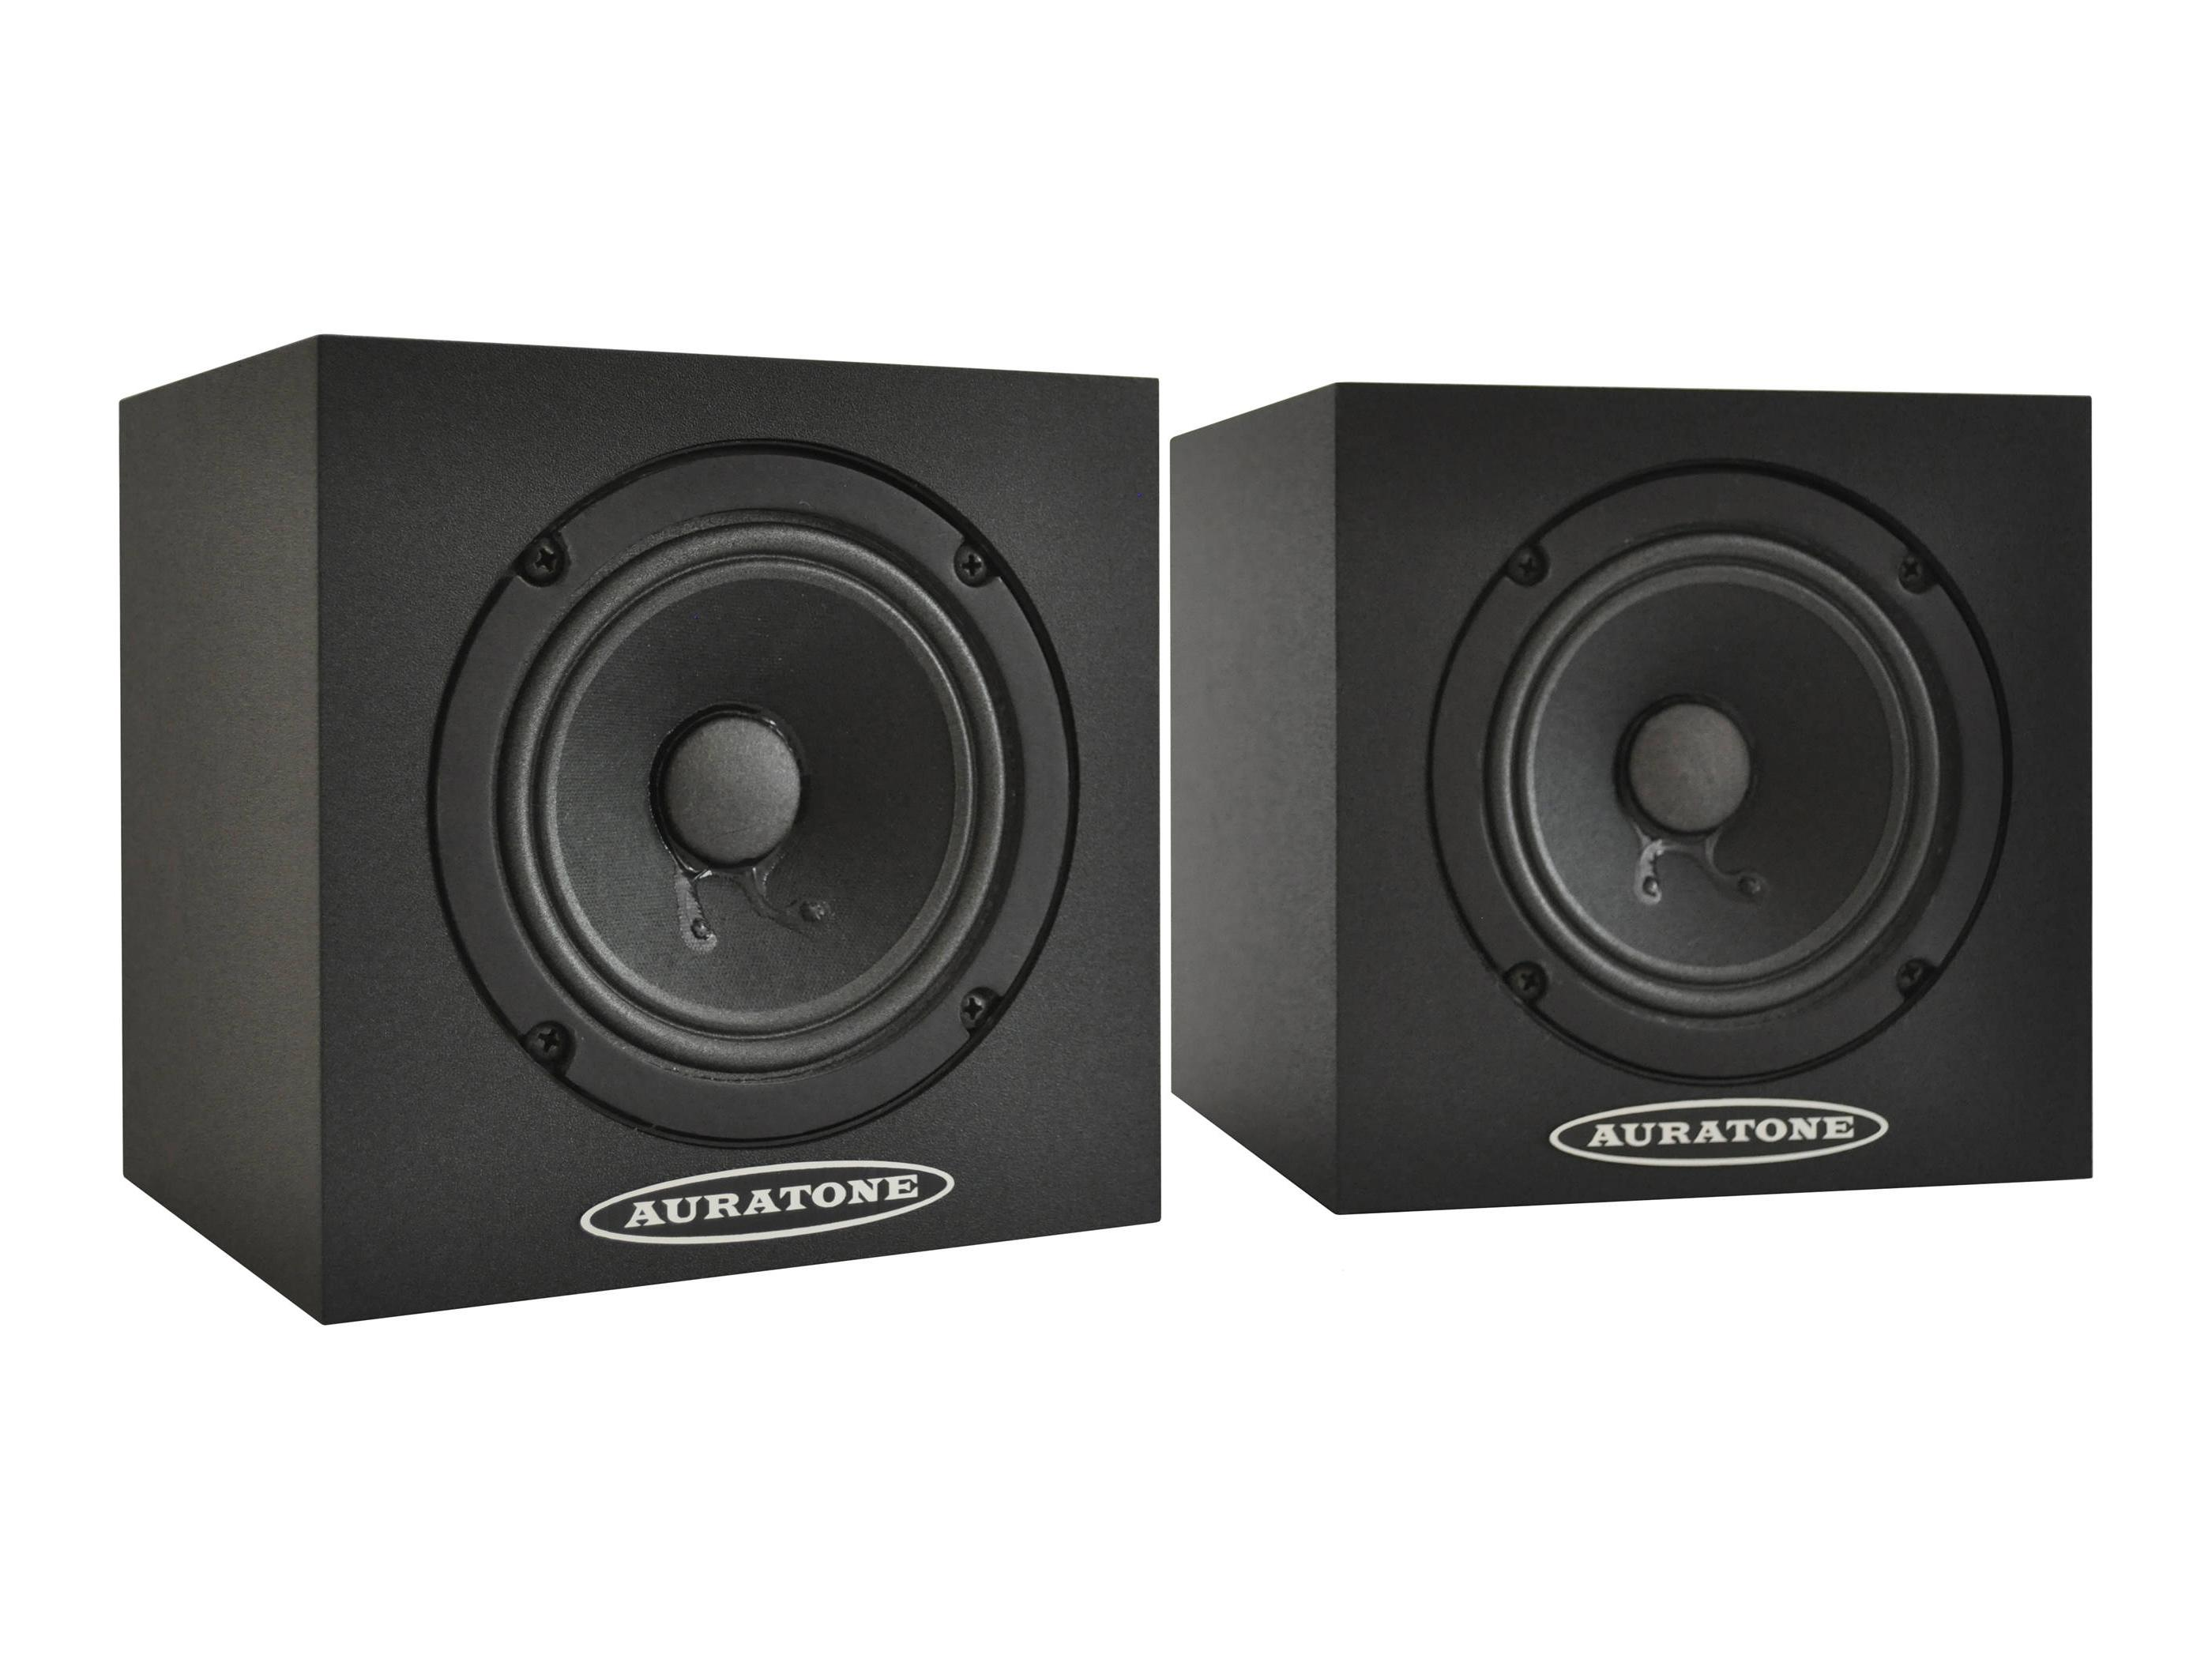 Auratone 5C Black Super Sound Cube/Passive Monitor/80-15000 Hz/Black (pair)